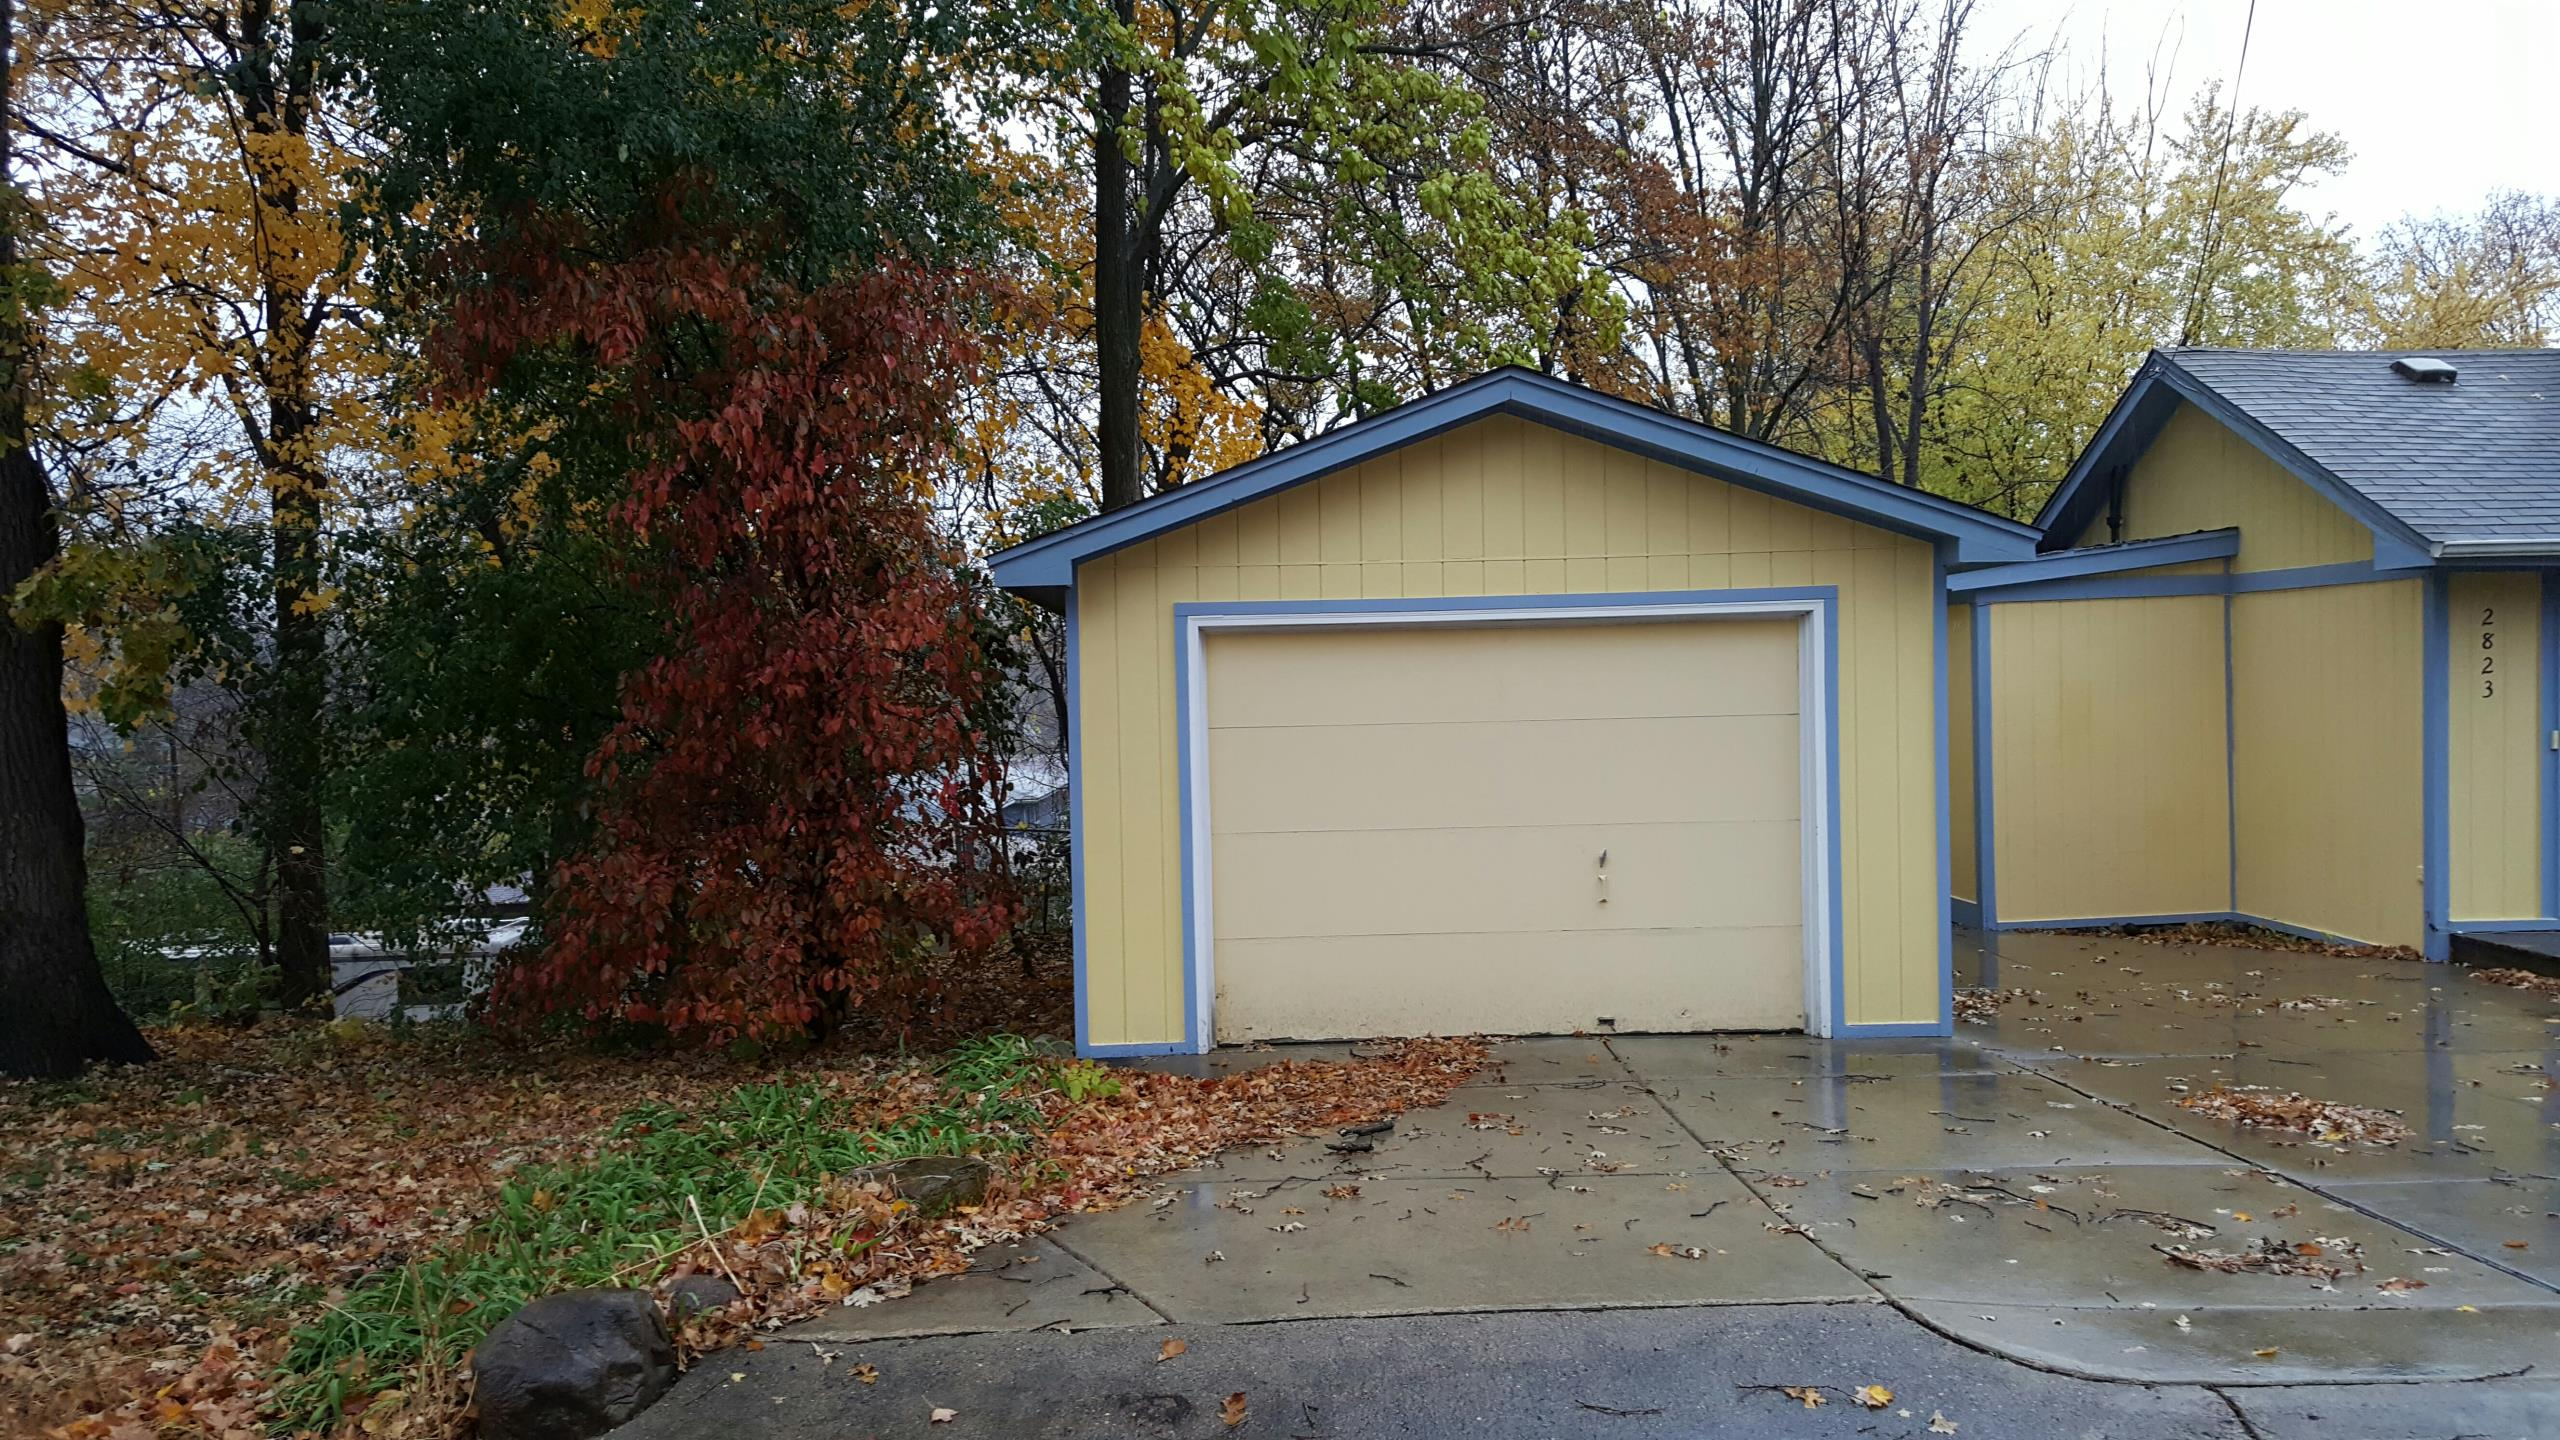 Mound, MN - Estimate for a new garage door replacement.